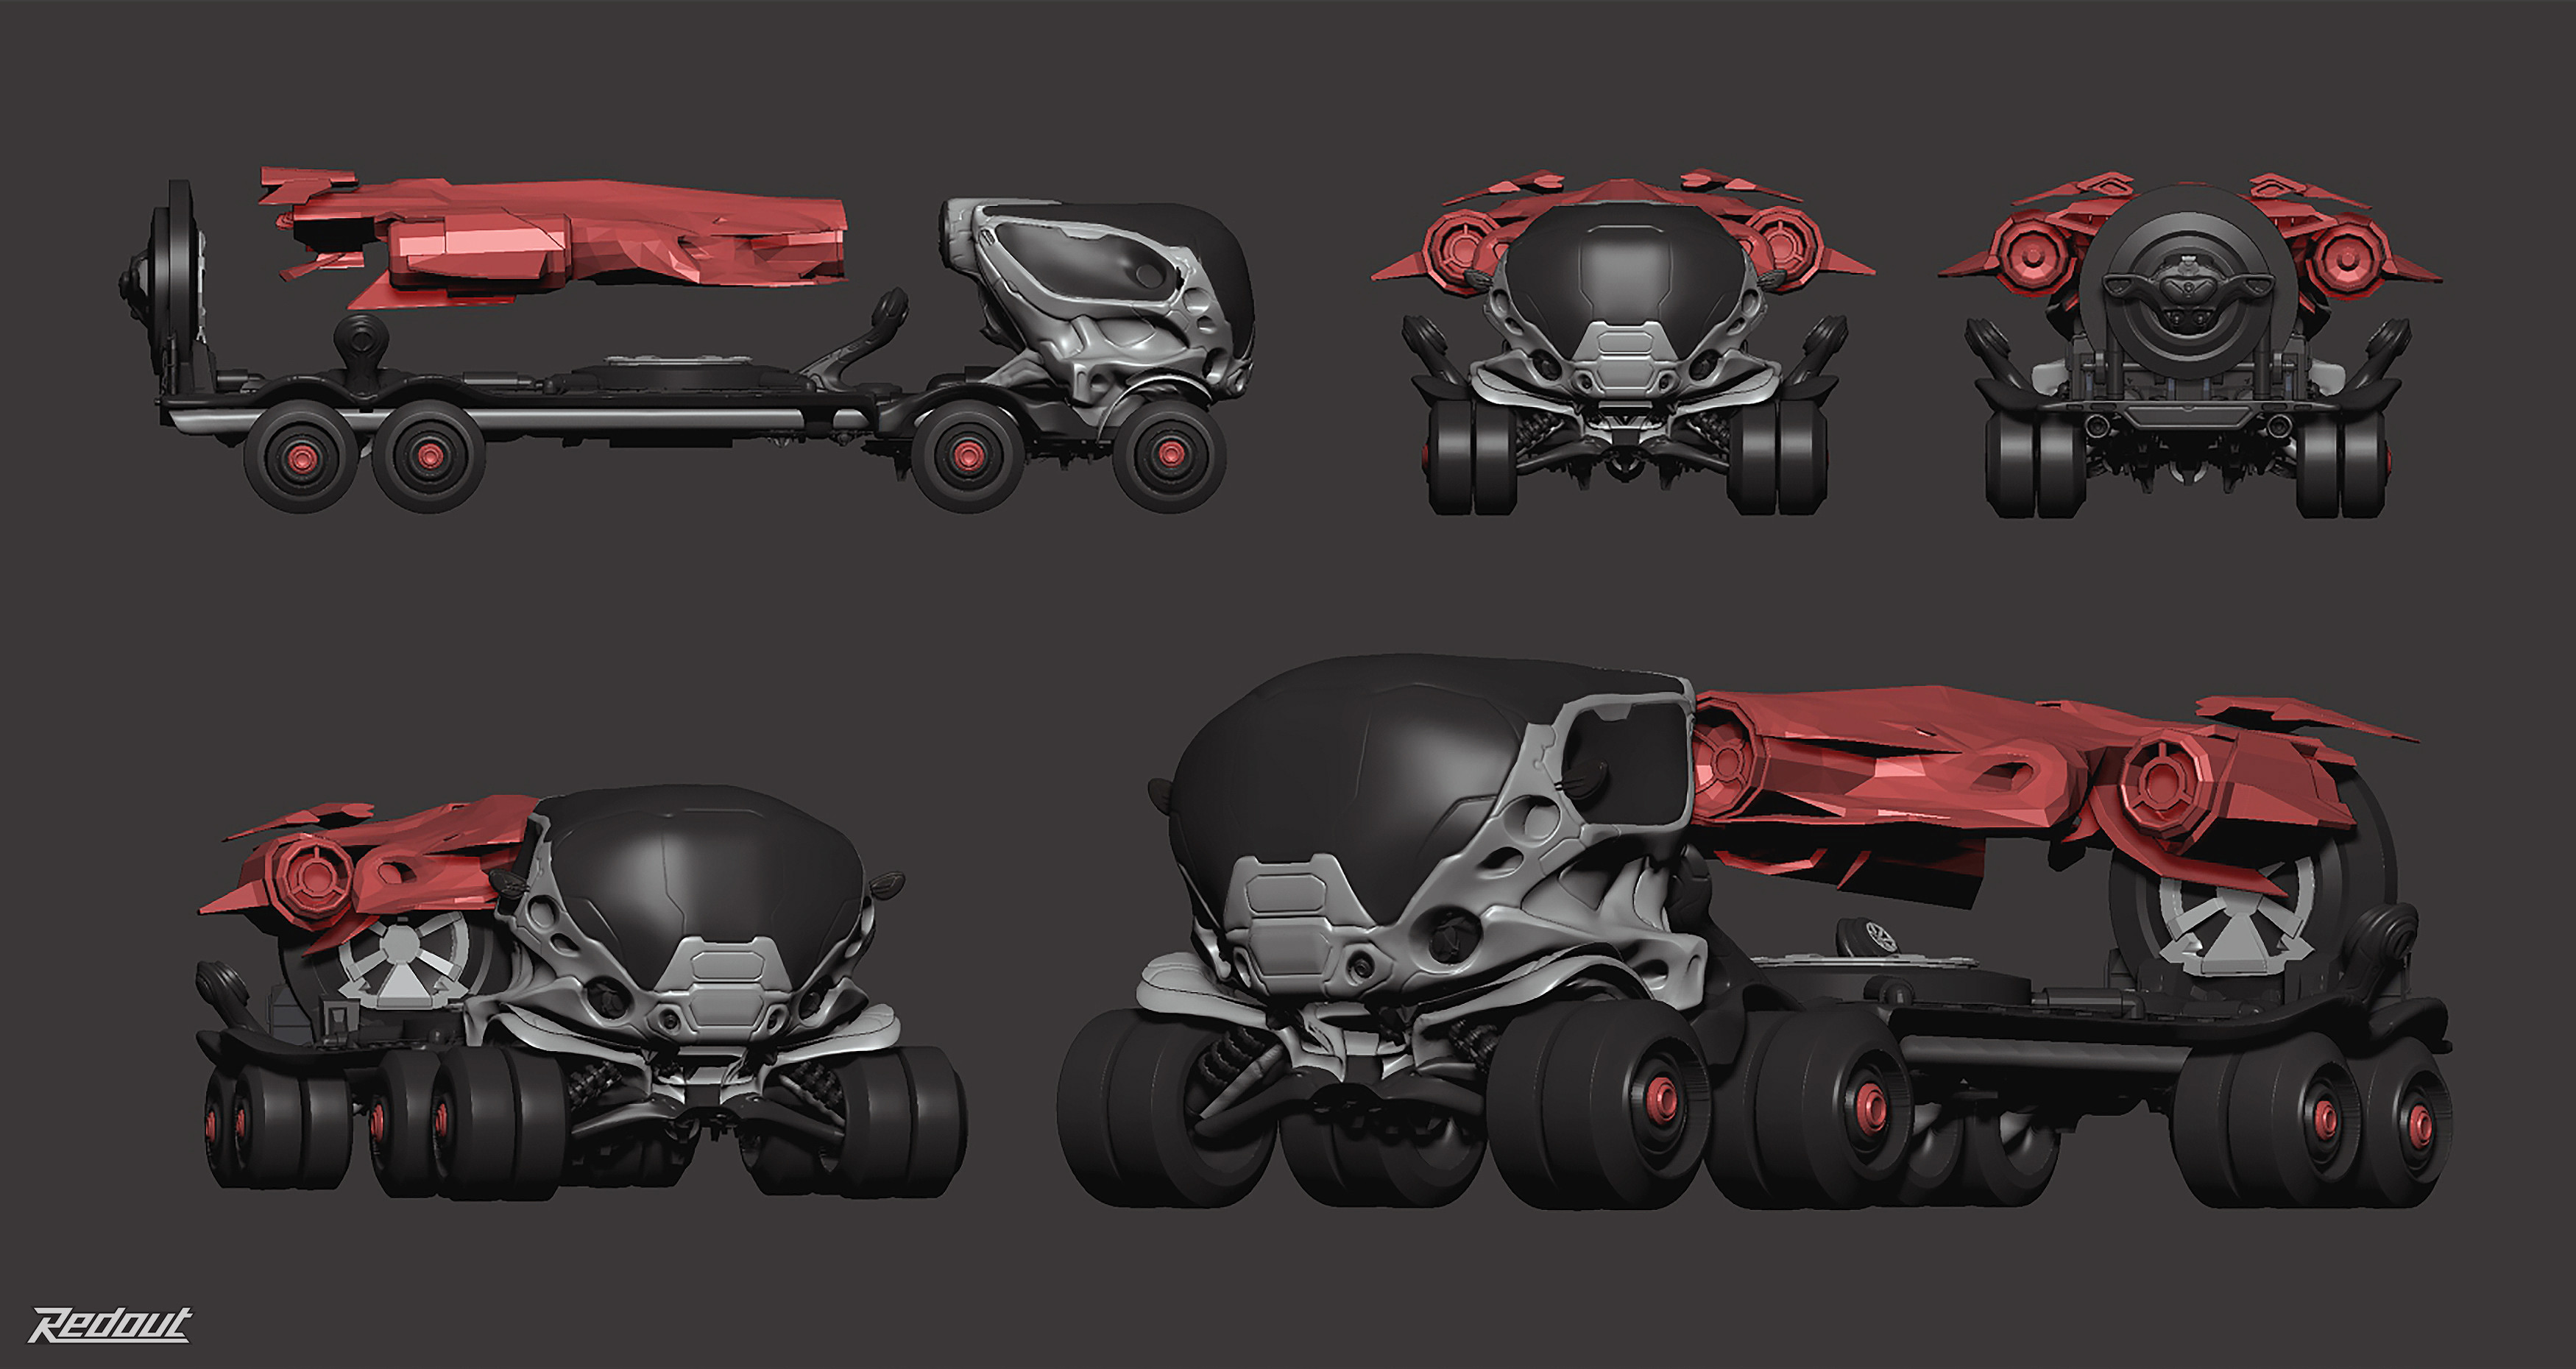 An early truck concept for Redout, able to transport a floating ship with a magnetic system.